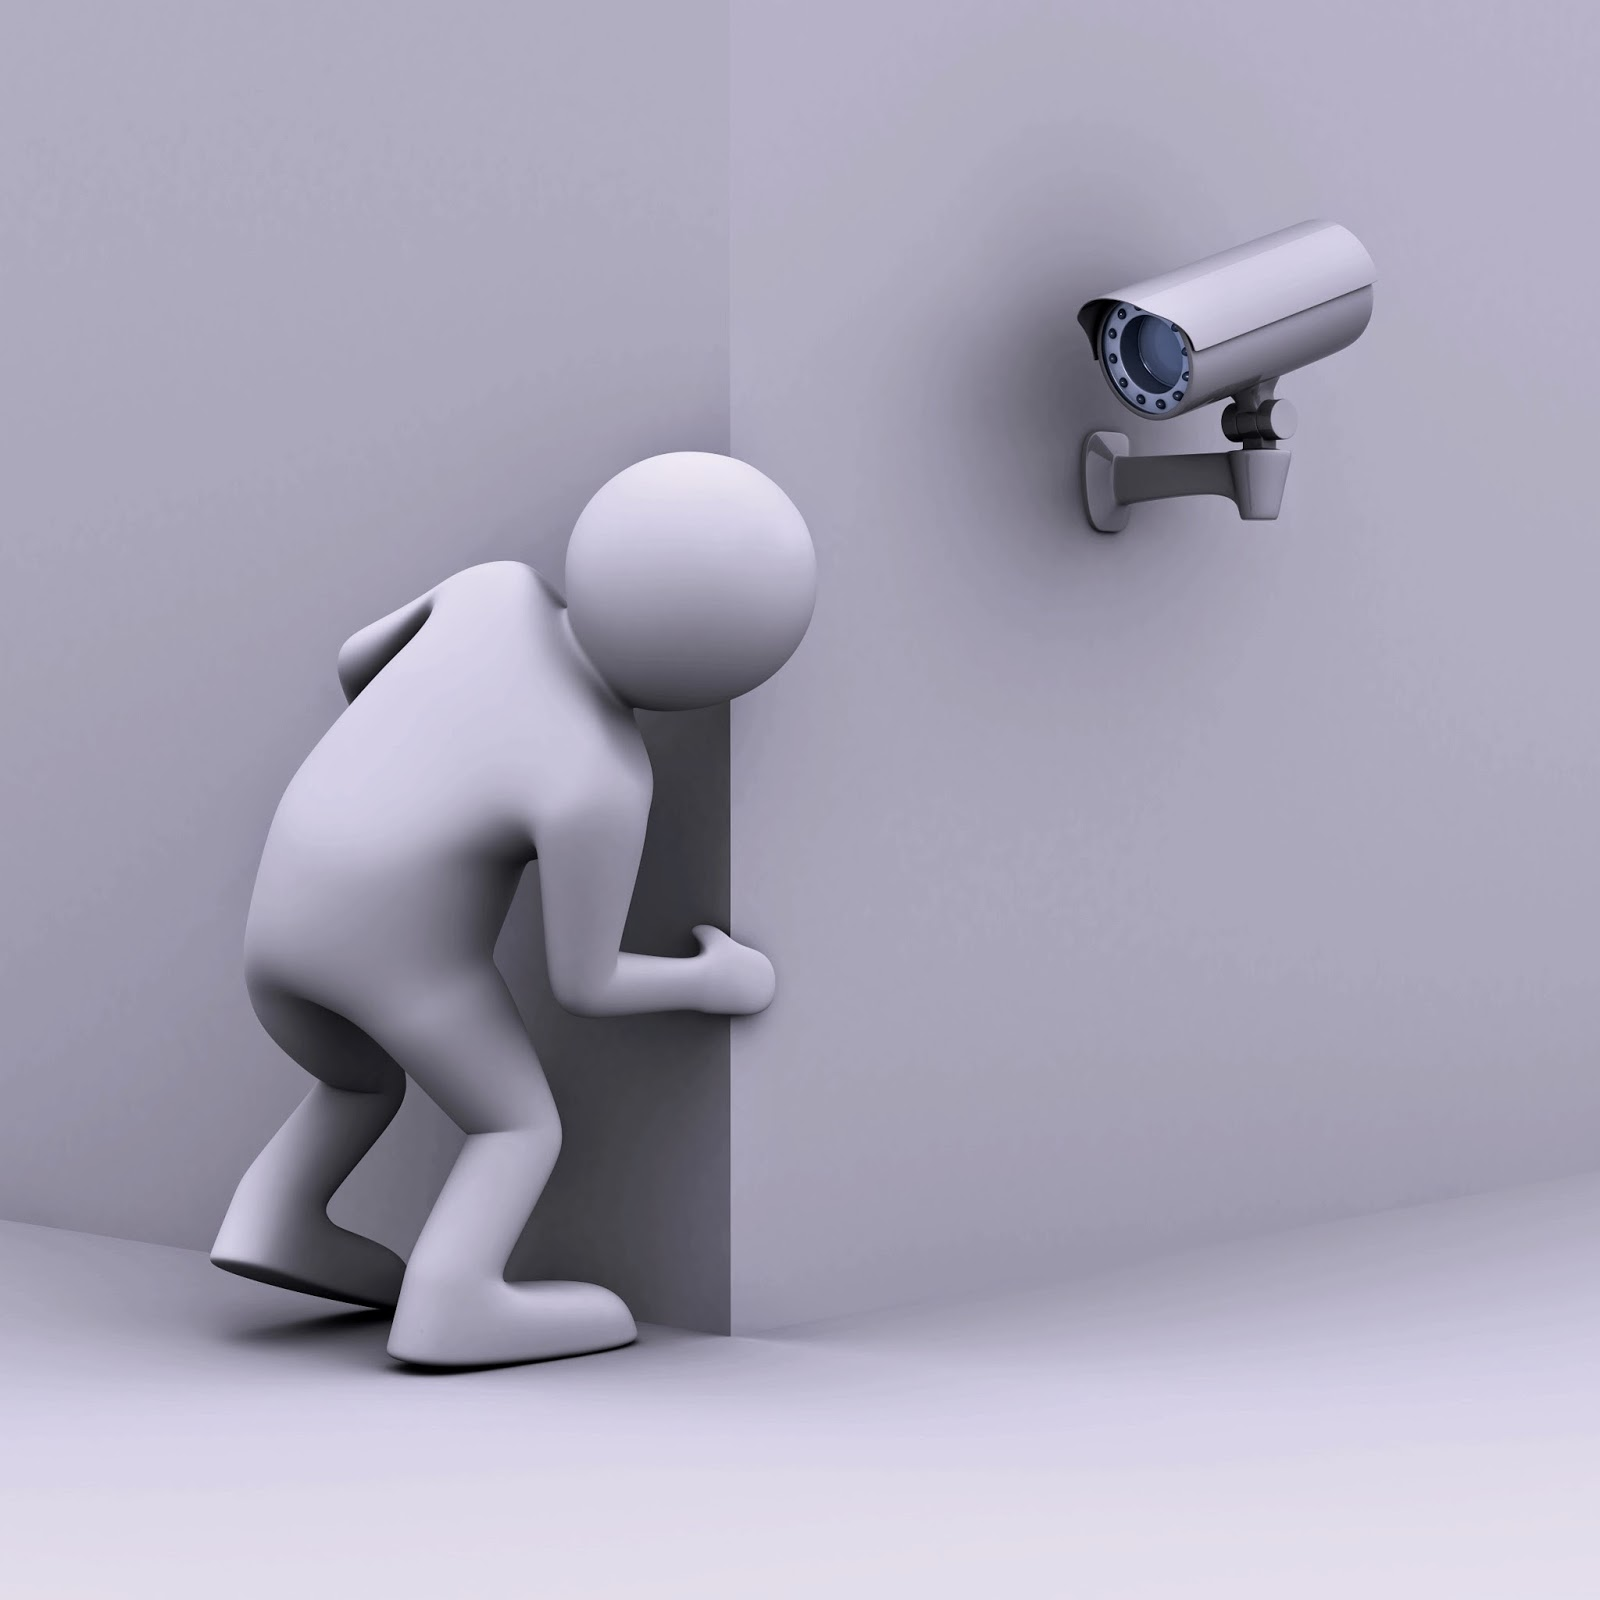 CCTV in the office 48